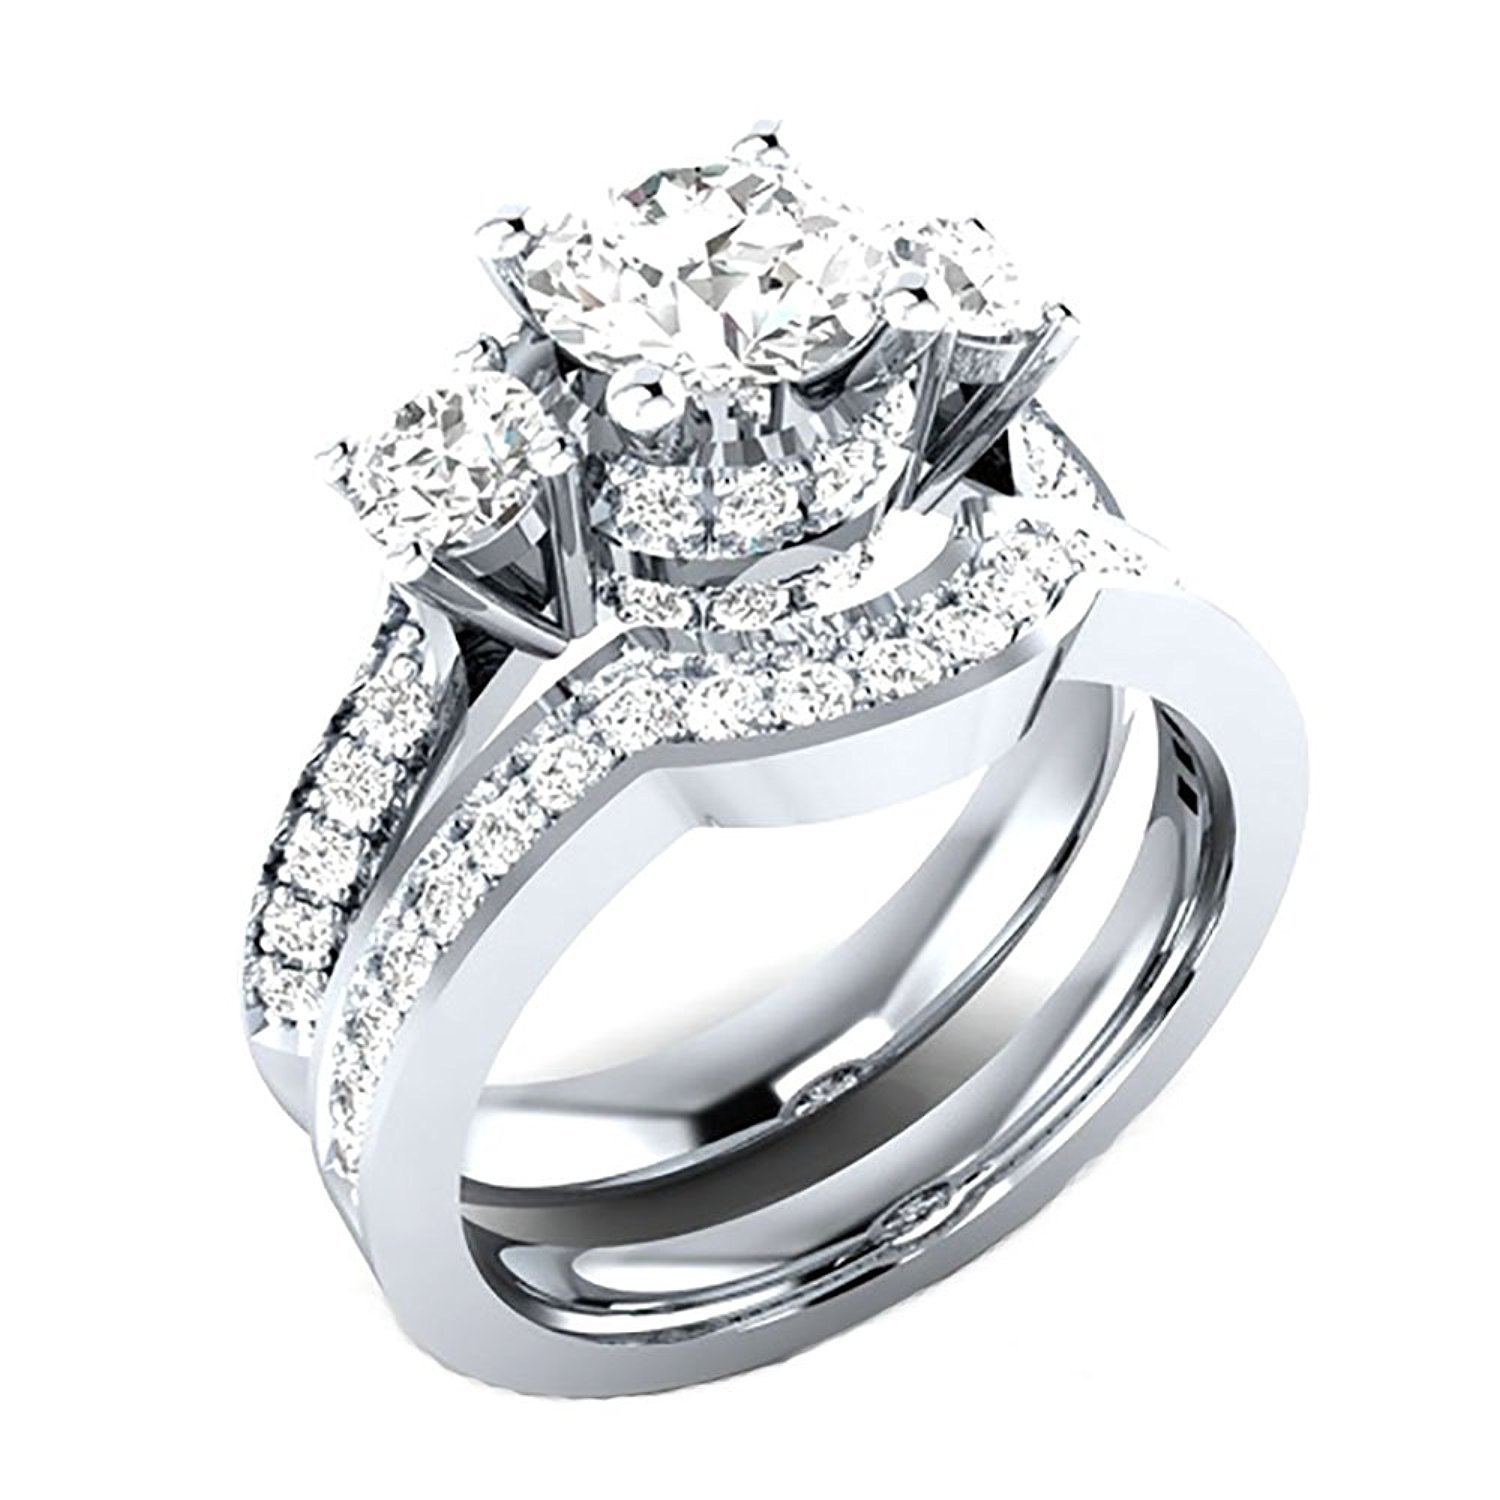 gallery jewelry matching wedding ring deb keezing s engagement diamond halo with rings band